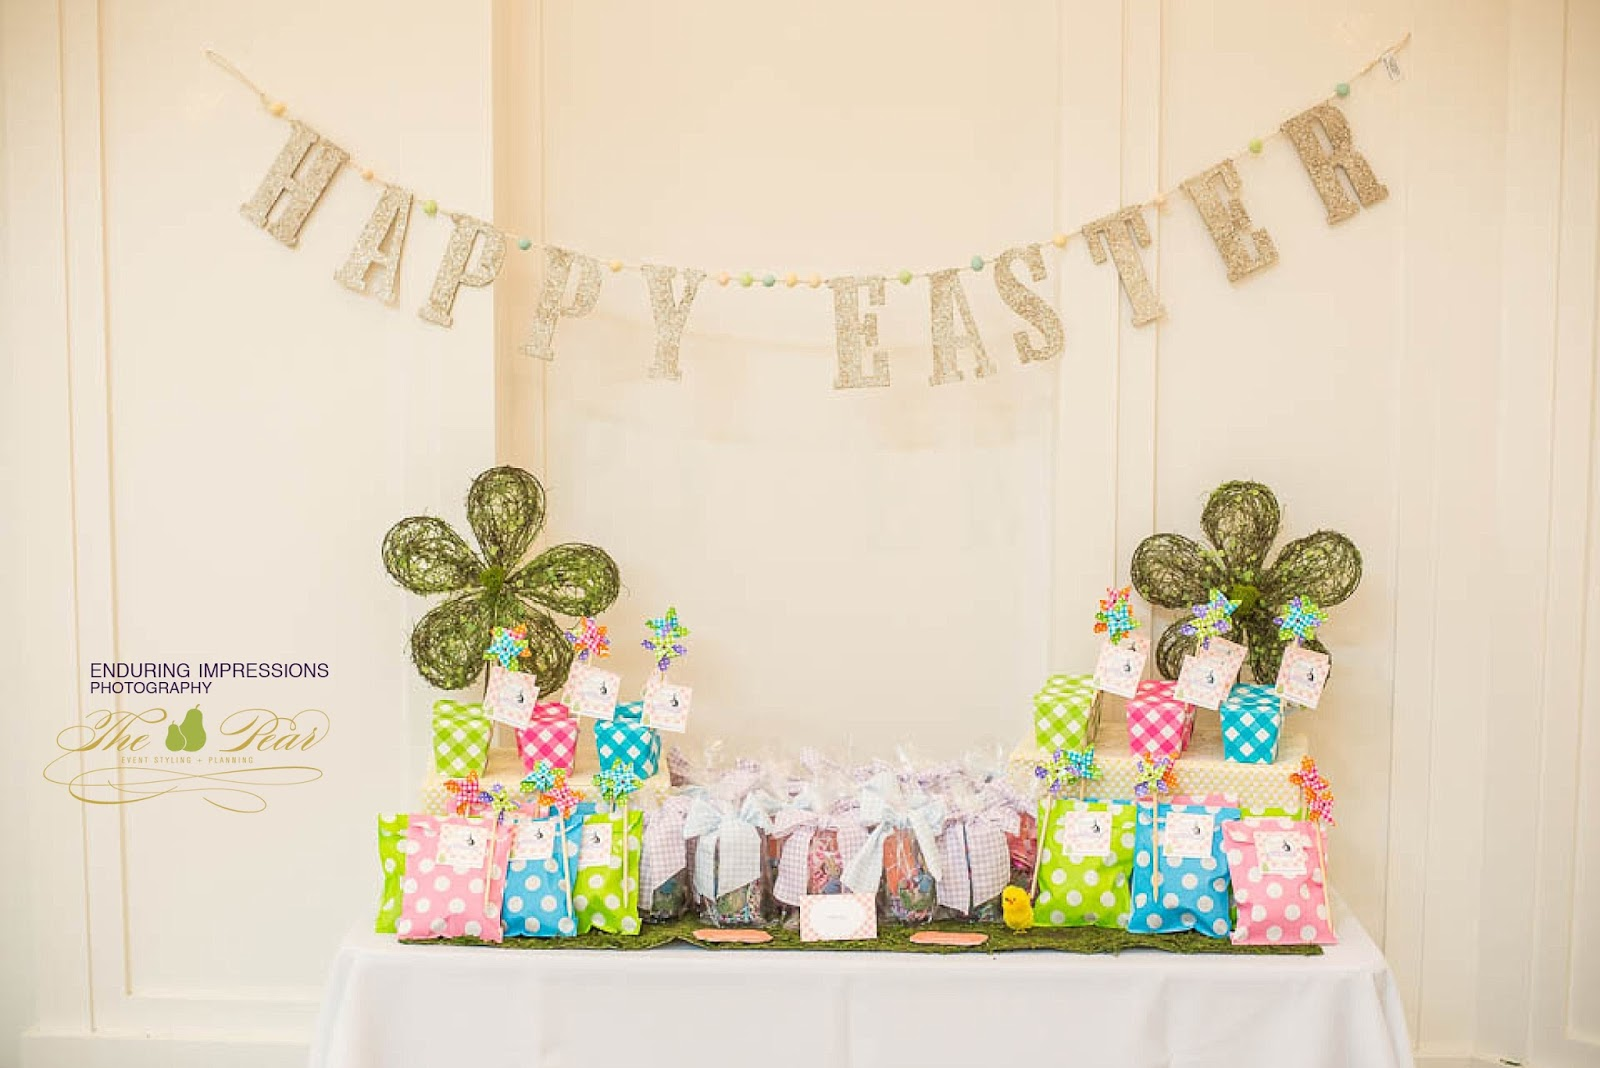 Pottery Barn Kids Easter Event   Palm Beach Gardens Event Photographer